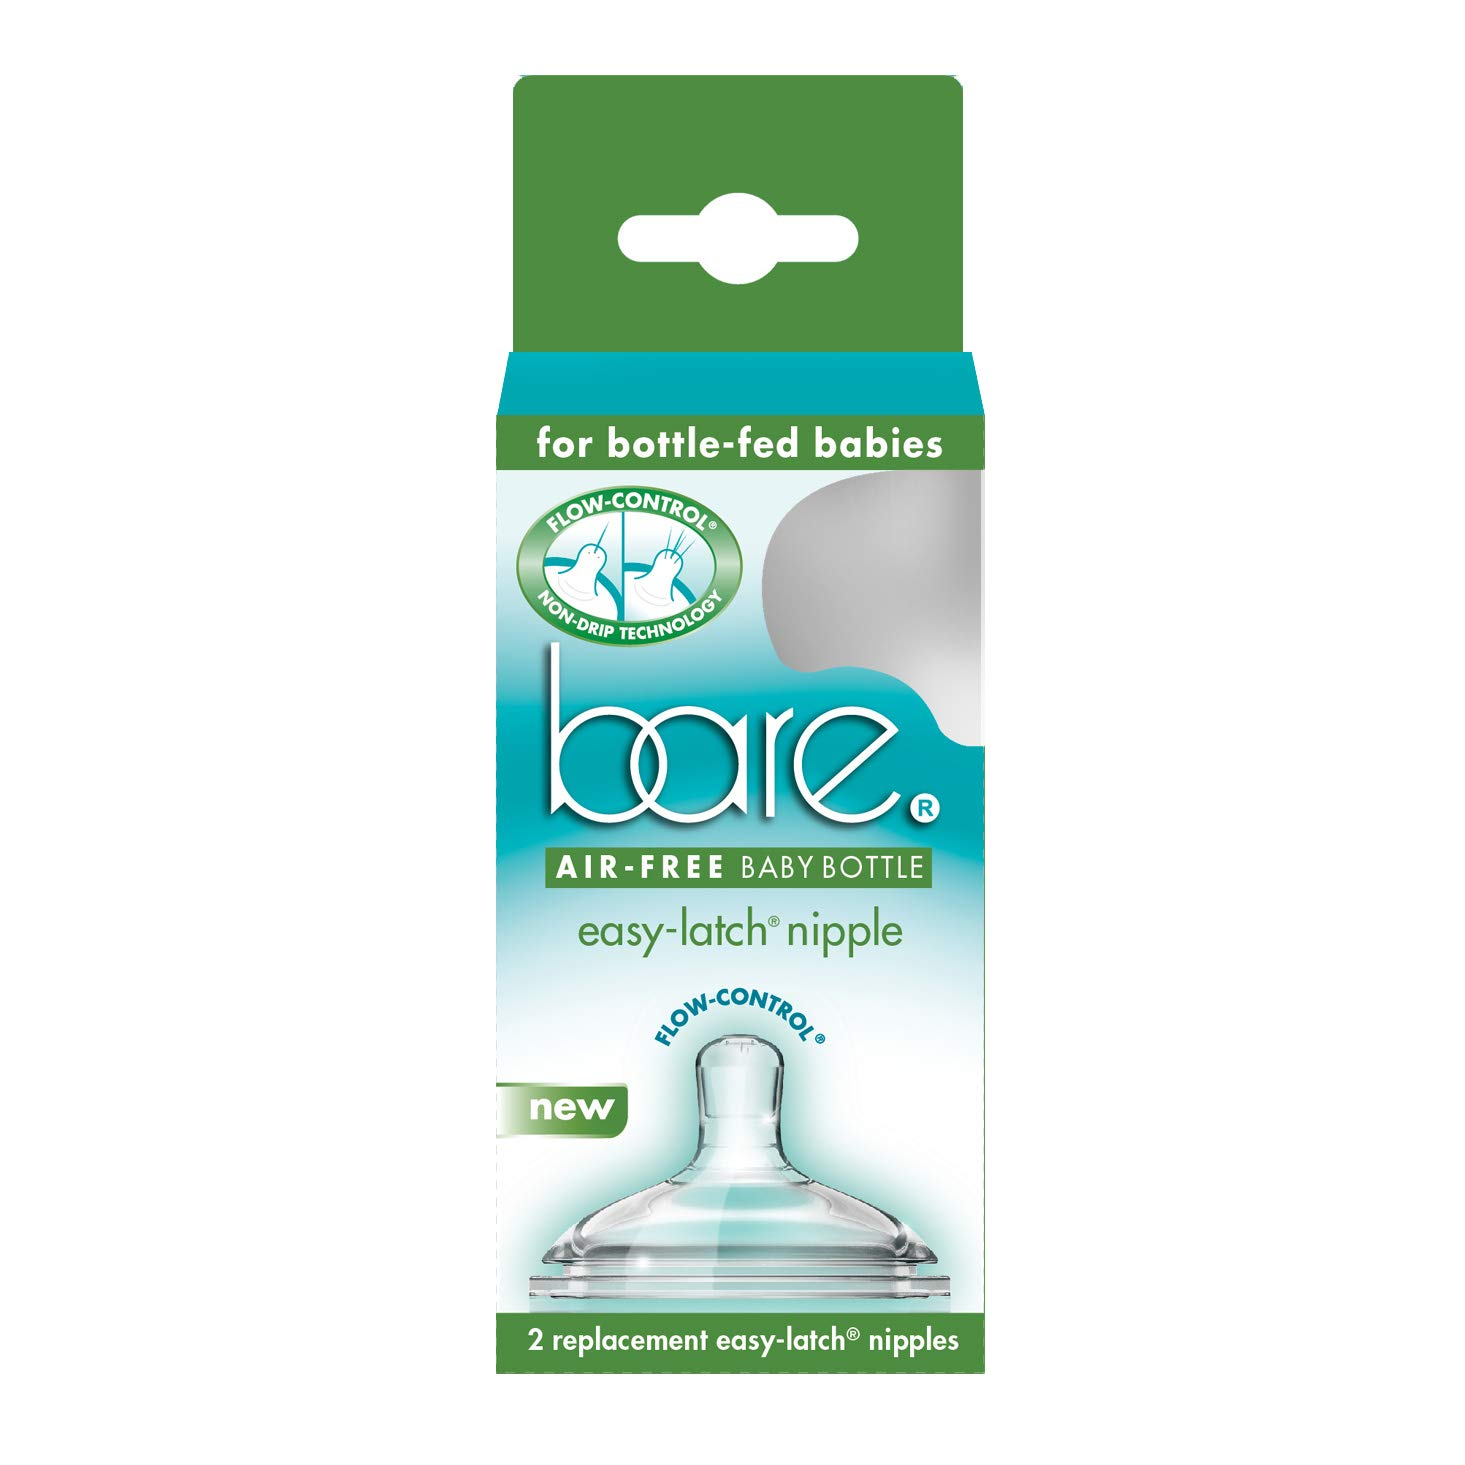 Bittylab Bare Easy-Latch Replacement Nipples for Bare Air-Free Feeding System - Pack of 2